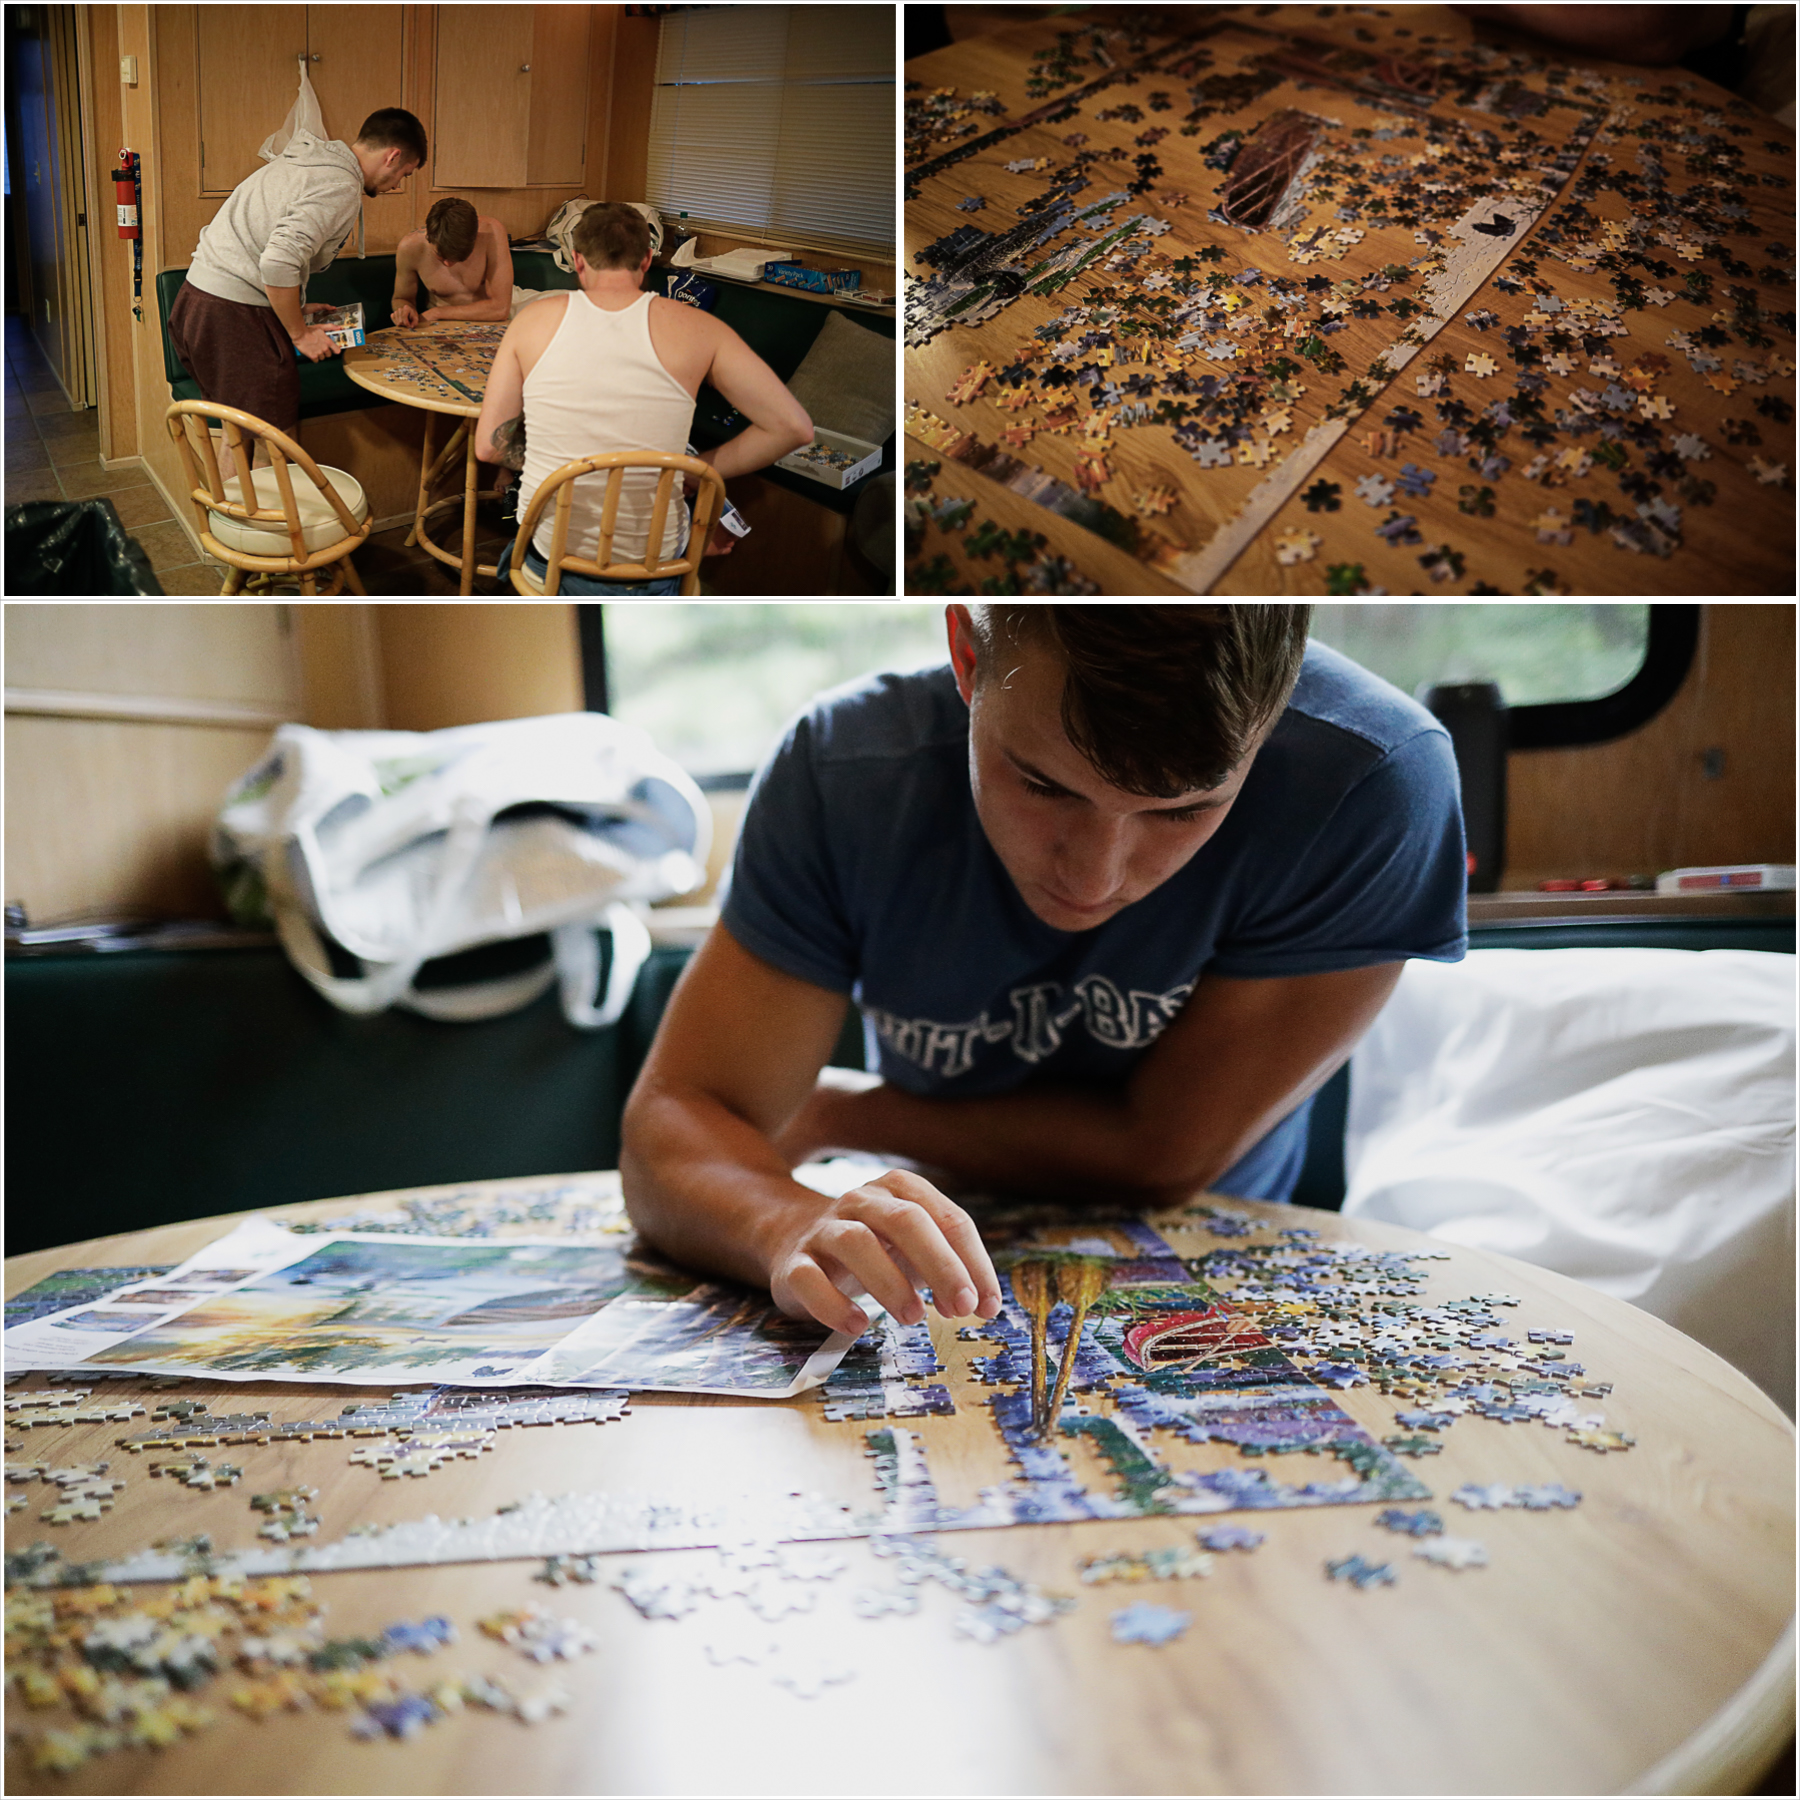 Putting puzzles together on the houseboat | Our Dale Hallow House Boat Adventure | J.B. TOLS